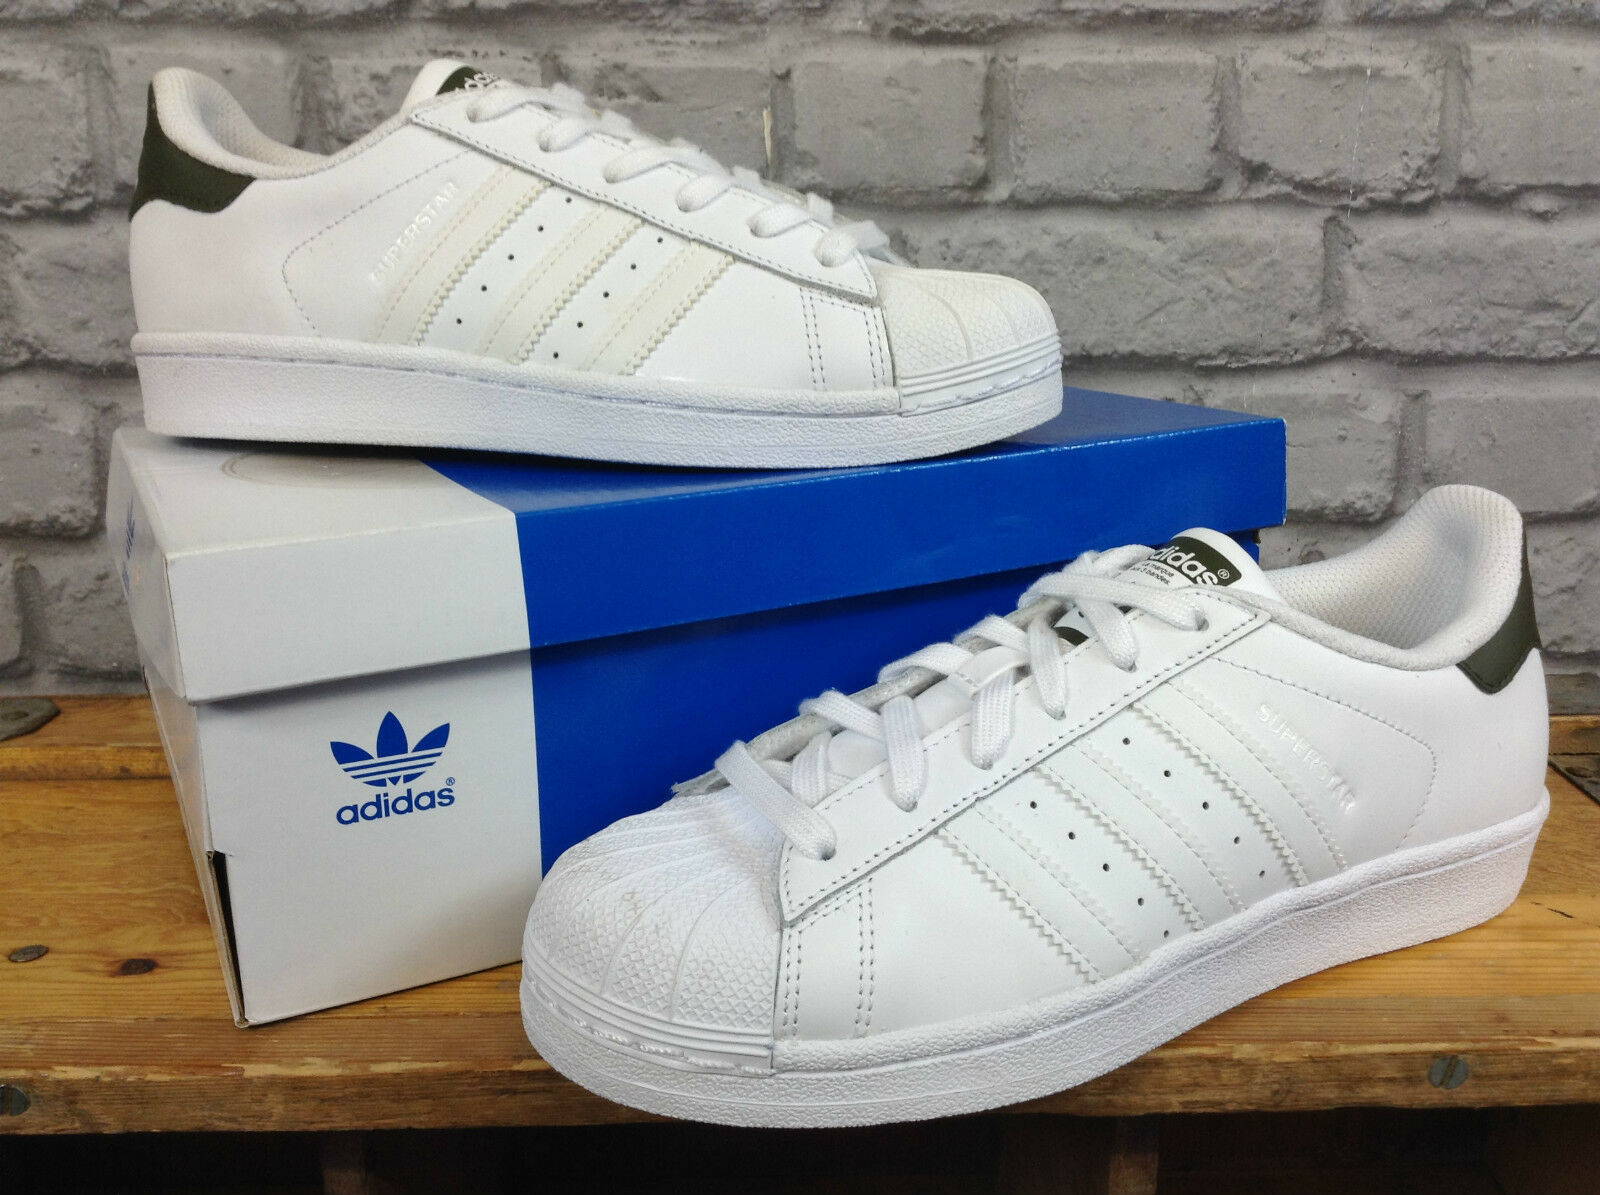 316500c51e1 Details about ADIDAS SUPERSTAR LADIES UK 5 SHELLTOE WHITE ORIGINALS LEATHER  TRAINERS RRP £70